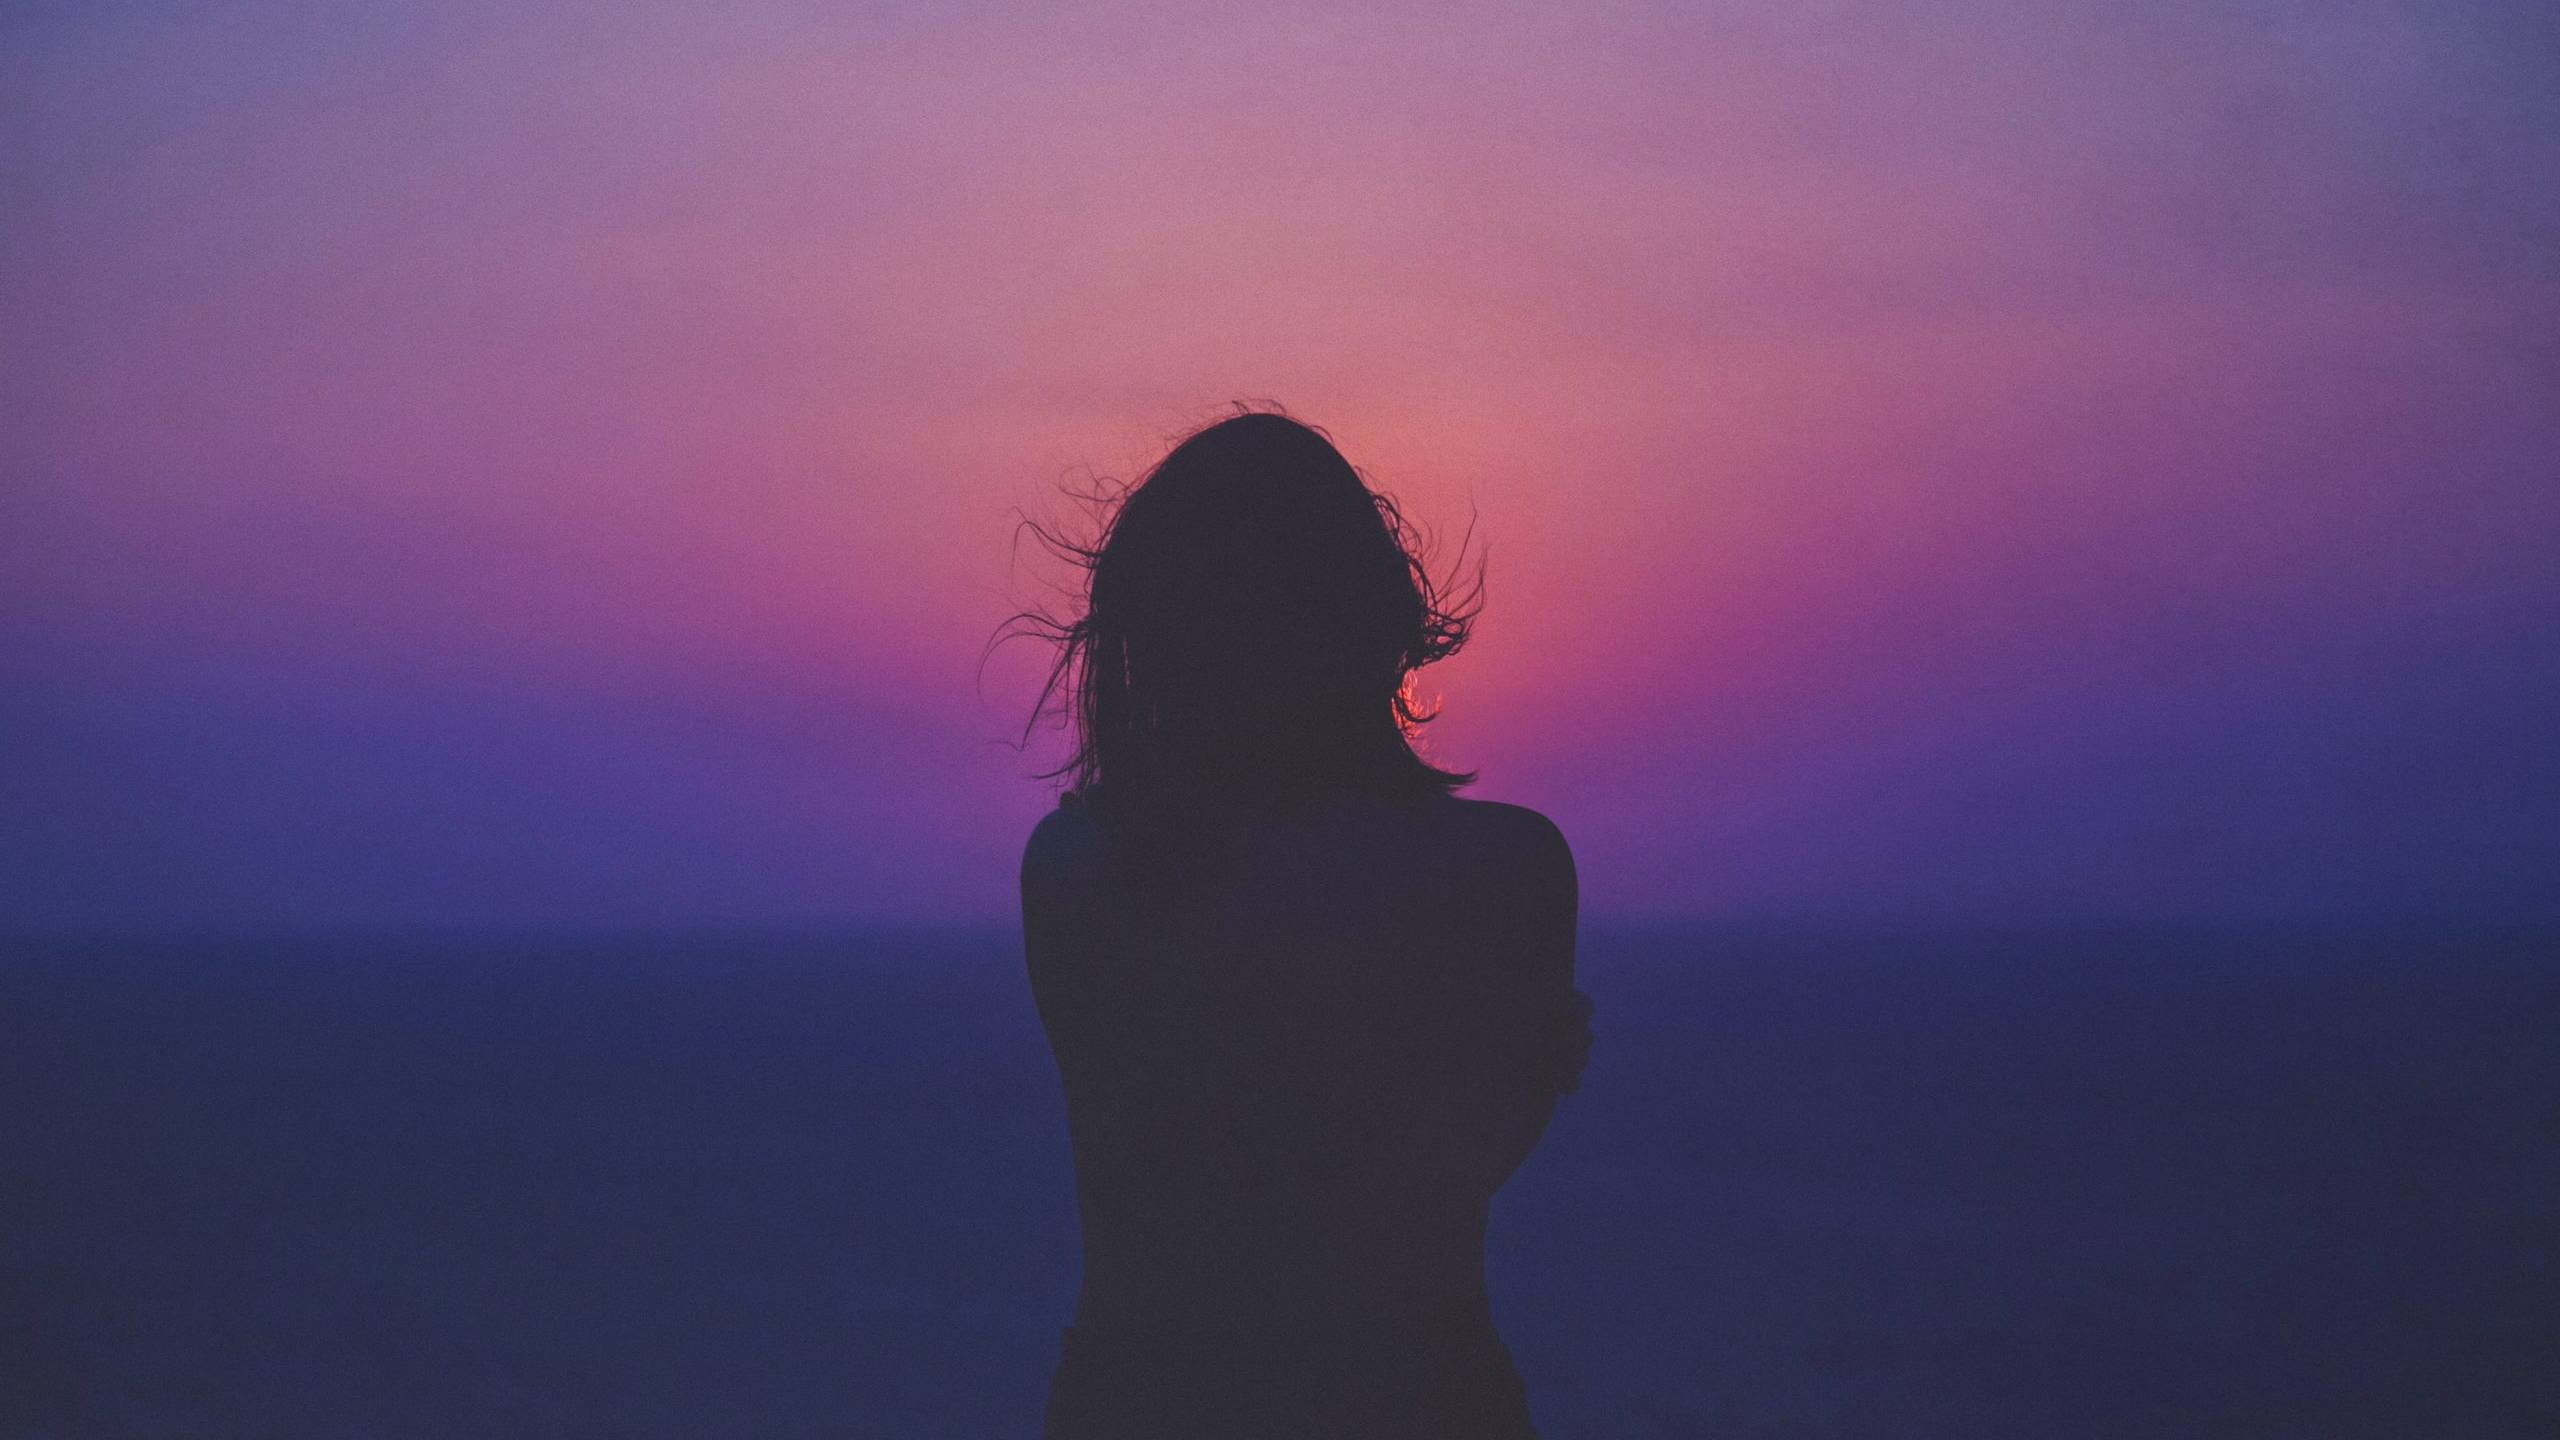 woman silhouette against sunset